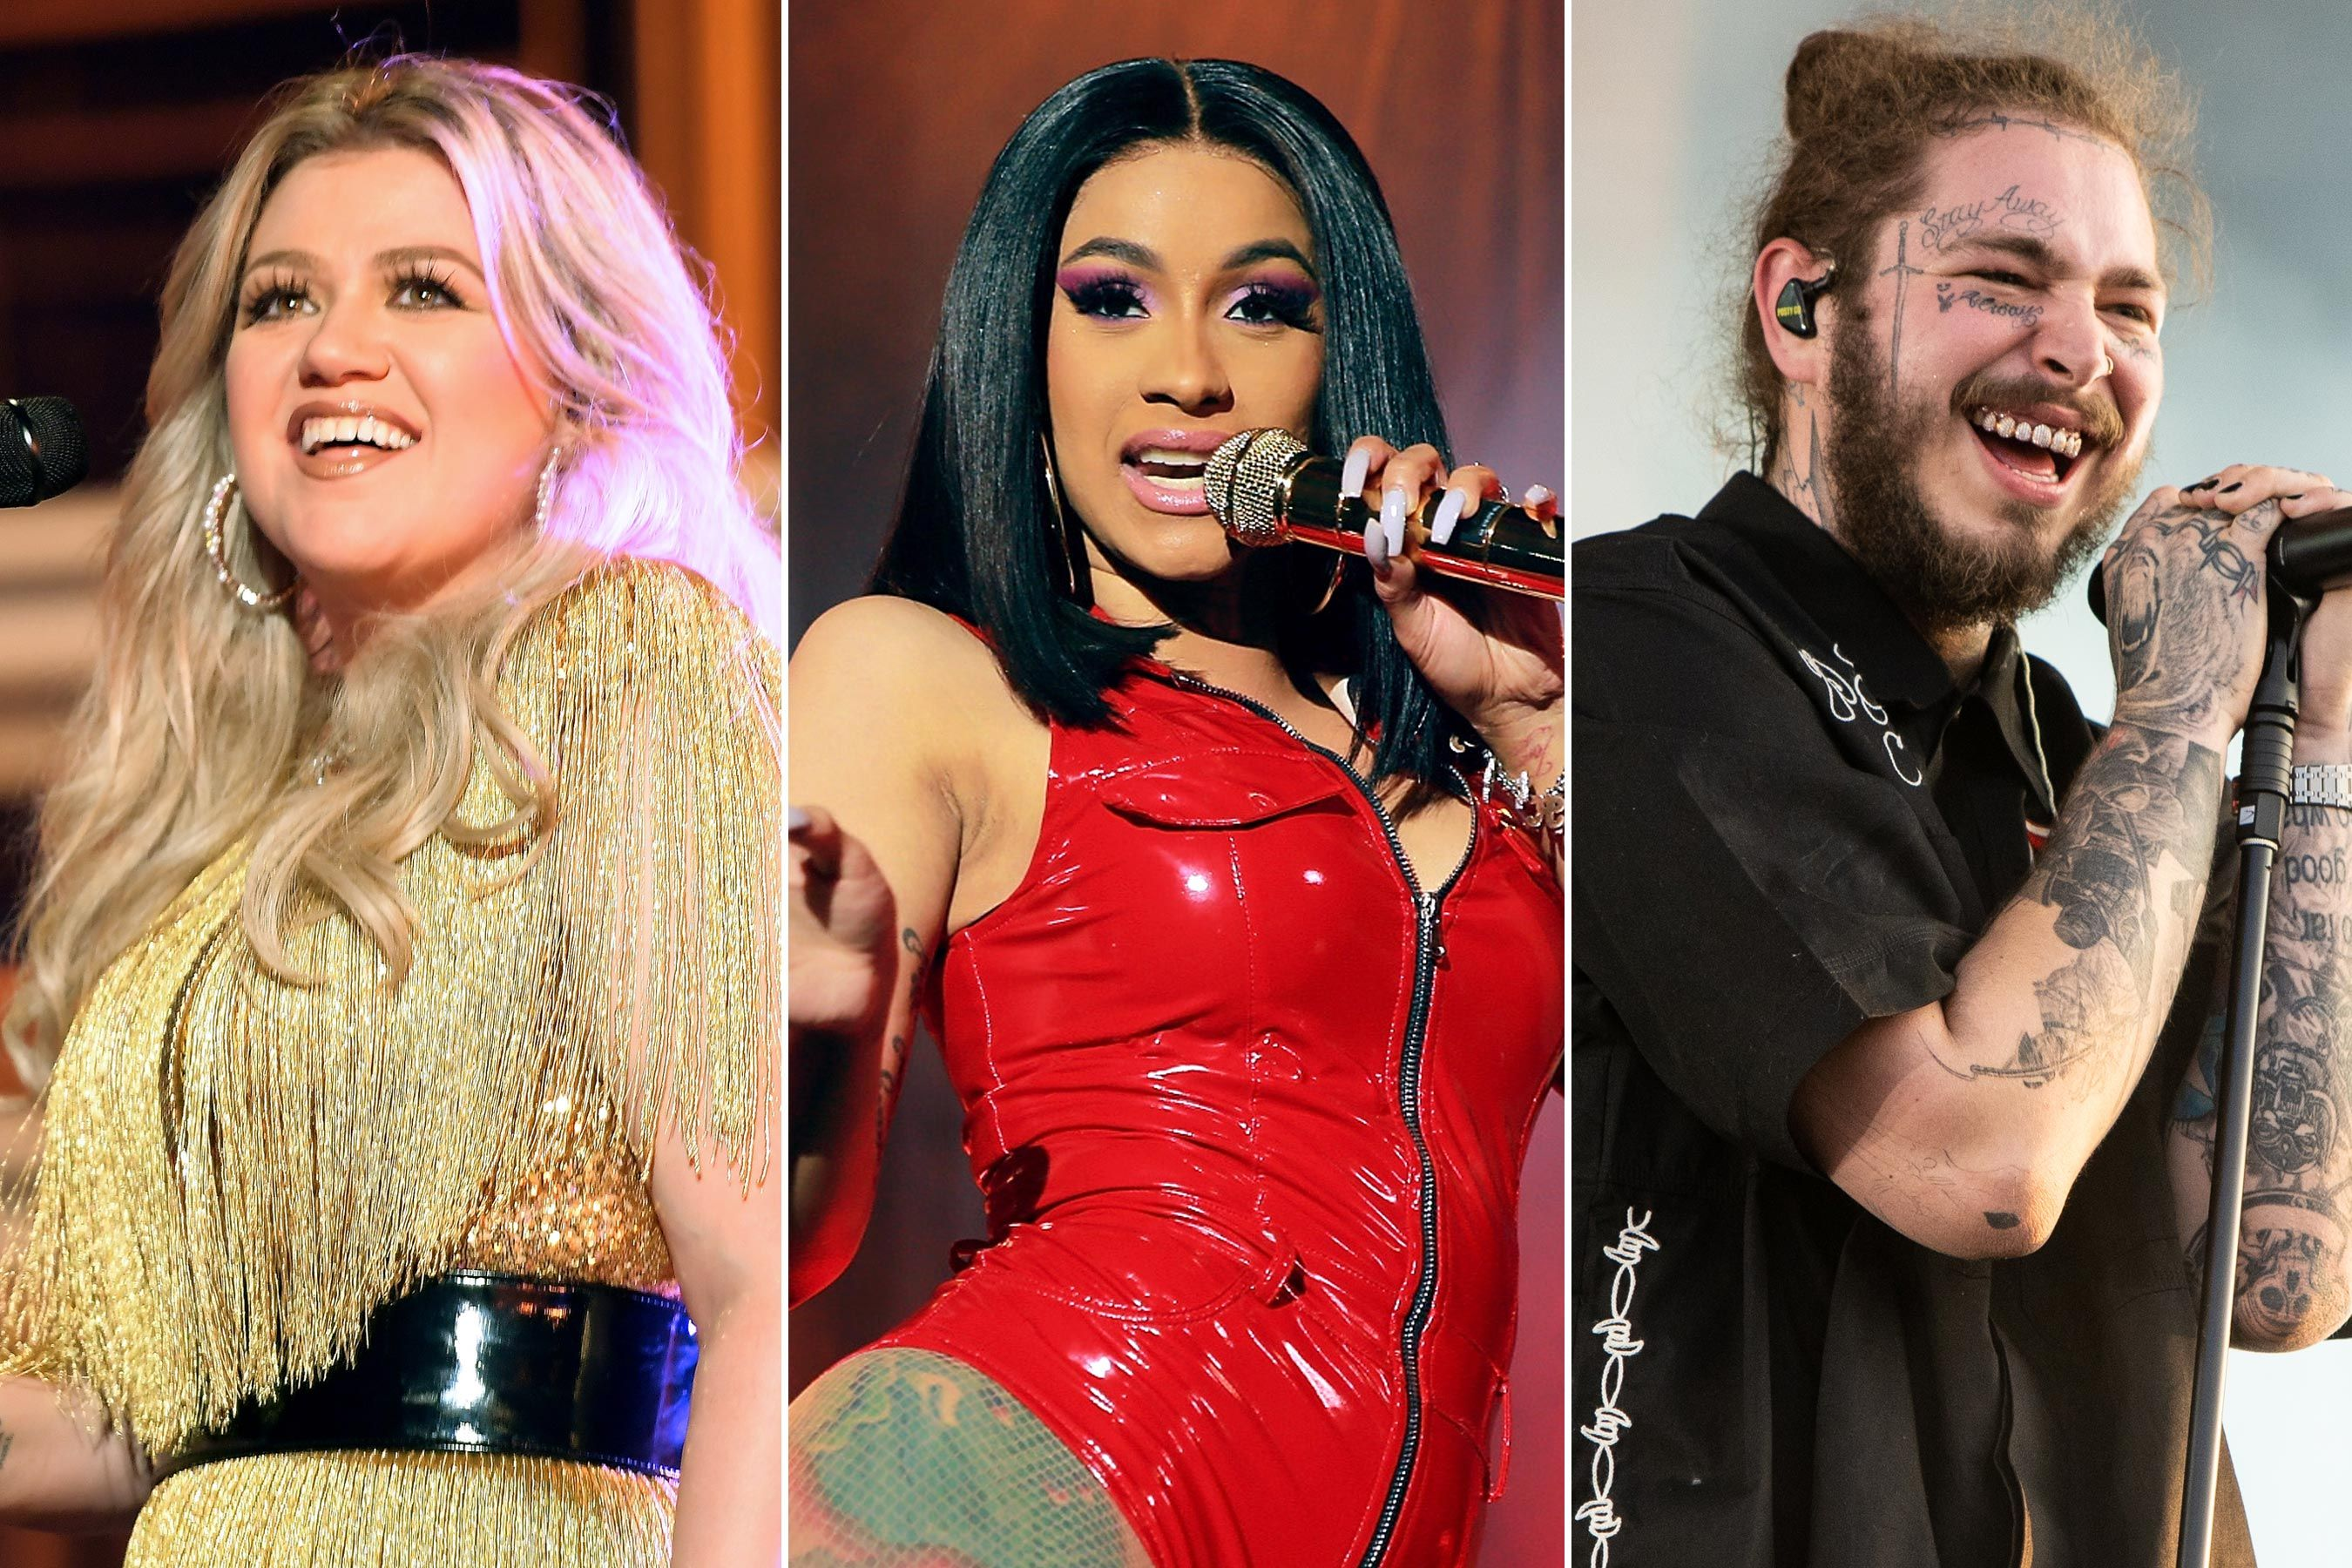 Kelly Clarkson Covers Cardi B And Post Malone In Mind Blowing New